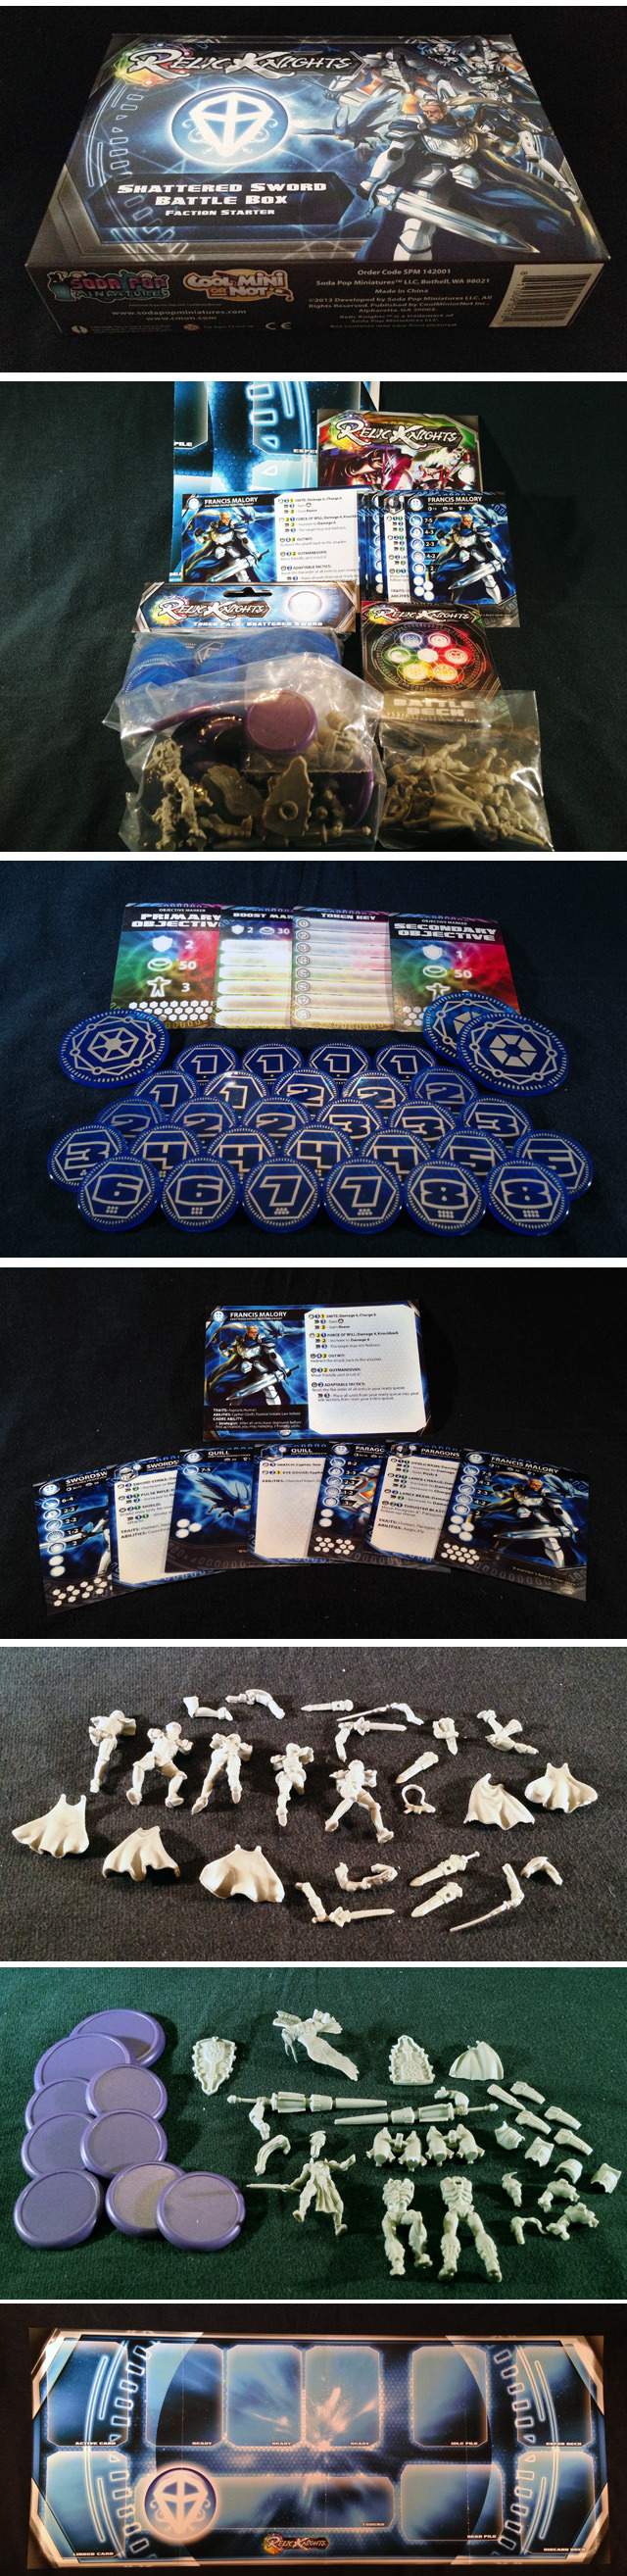 Relic Knights Kickstarter From Soda Pop The Ongoing Update Thread Cerci Speed Circuit Pacer Ebay 2014 02 05 182614